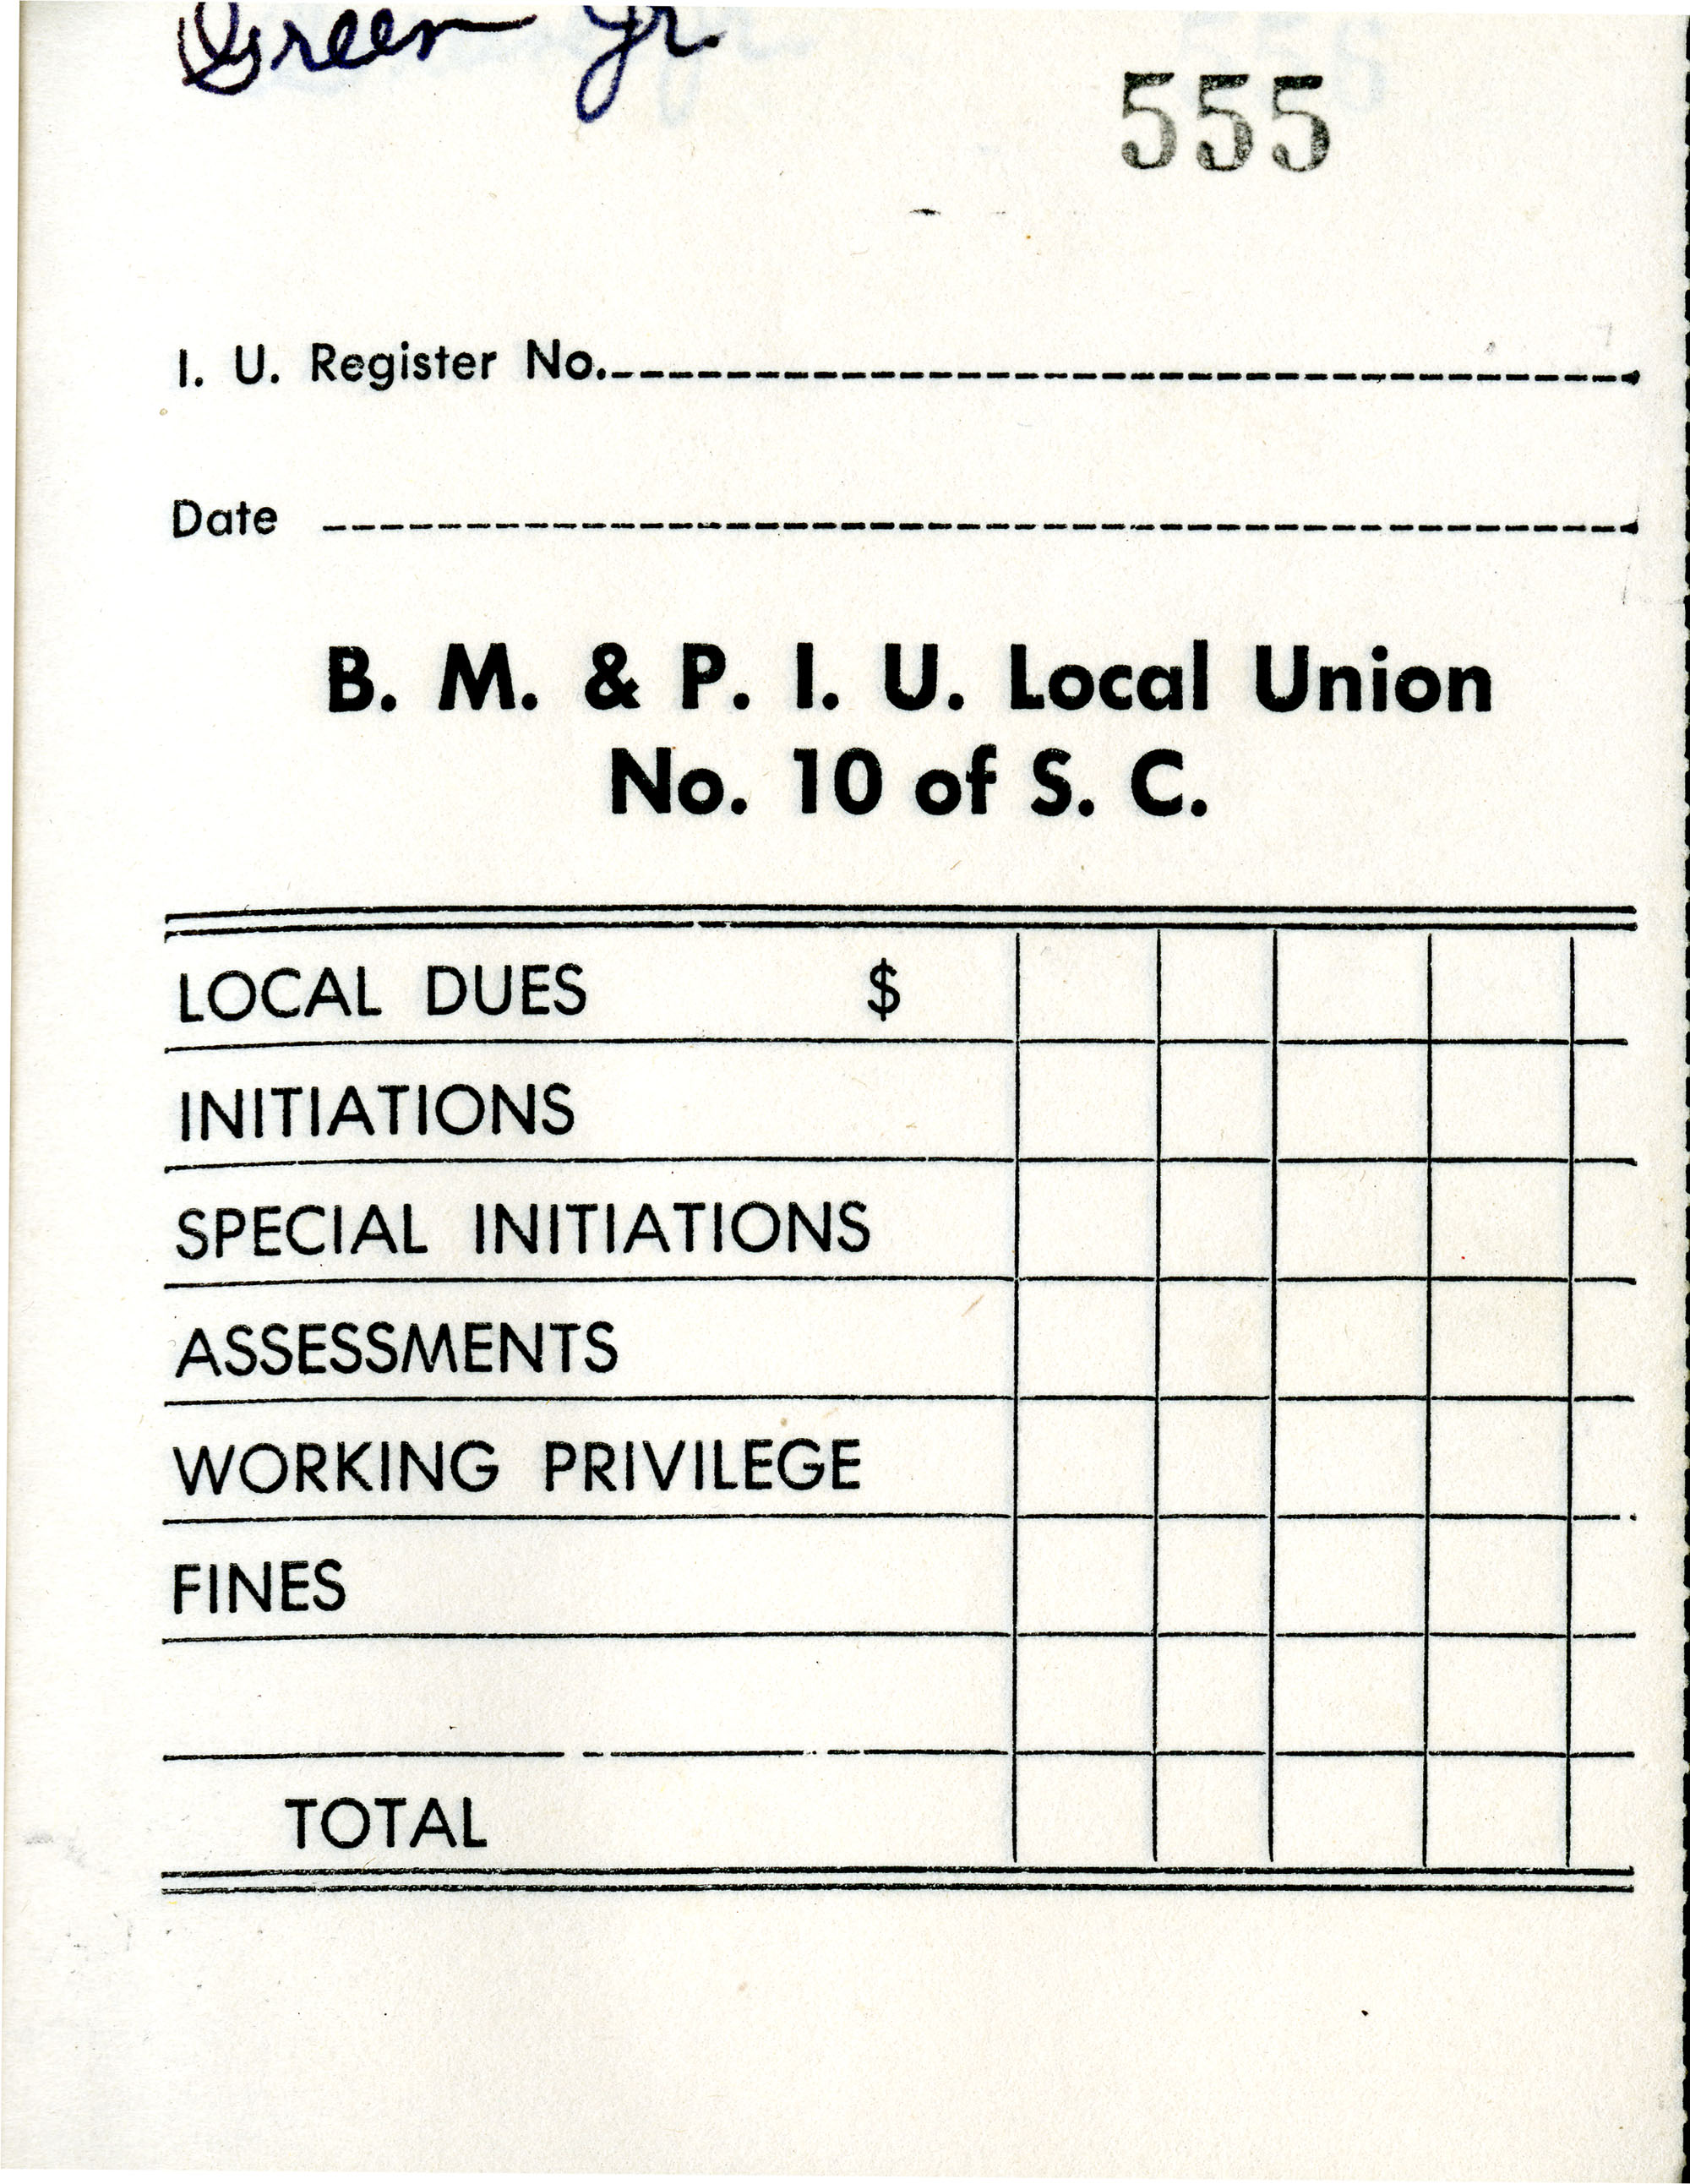 Receipt Book 6, Page 6